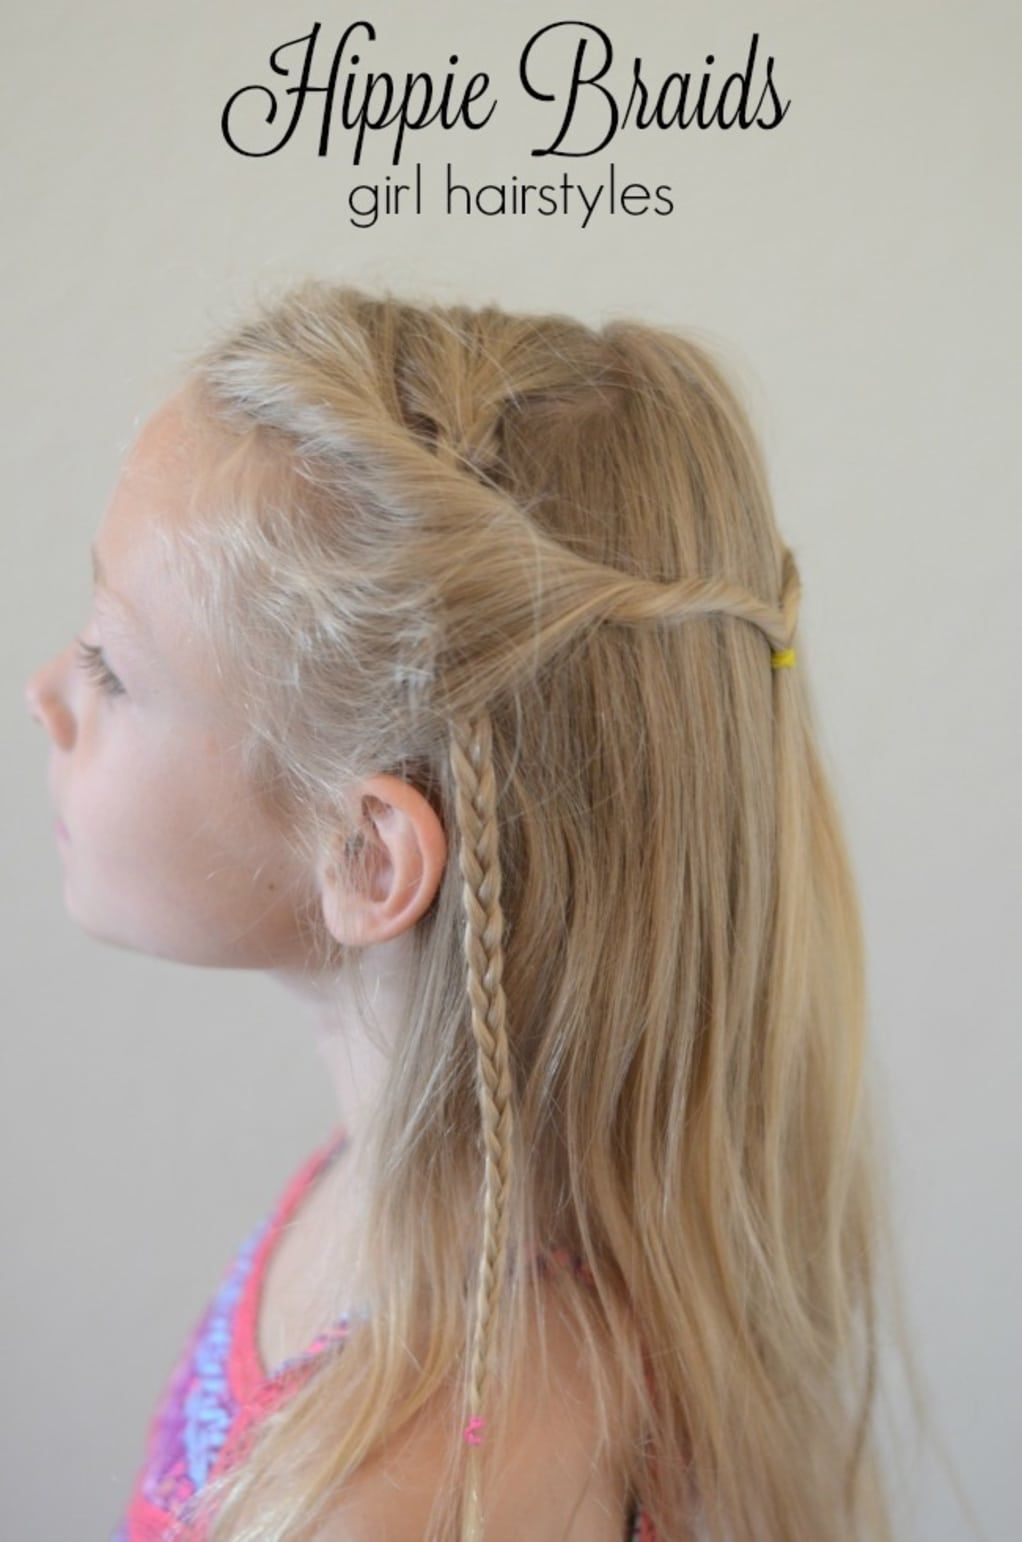 Haircuts For Short Hair 2016 Hairstyles For Little White Girls Top Hairstyle For Girl Kids Hairstyles Braided Hairstyles Easy Braids